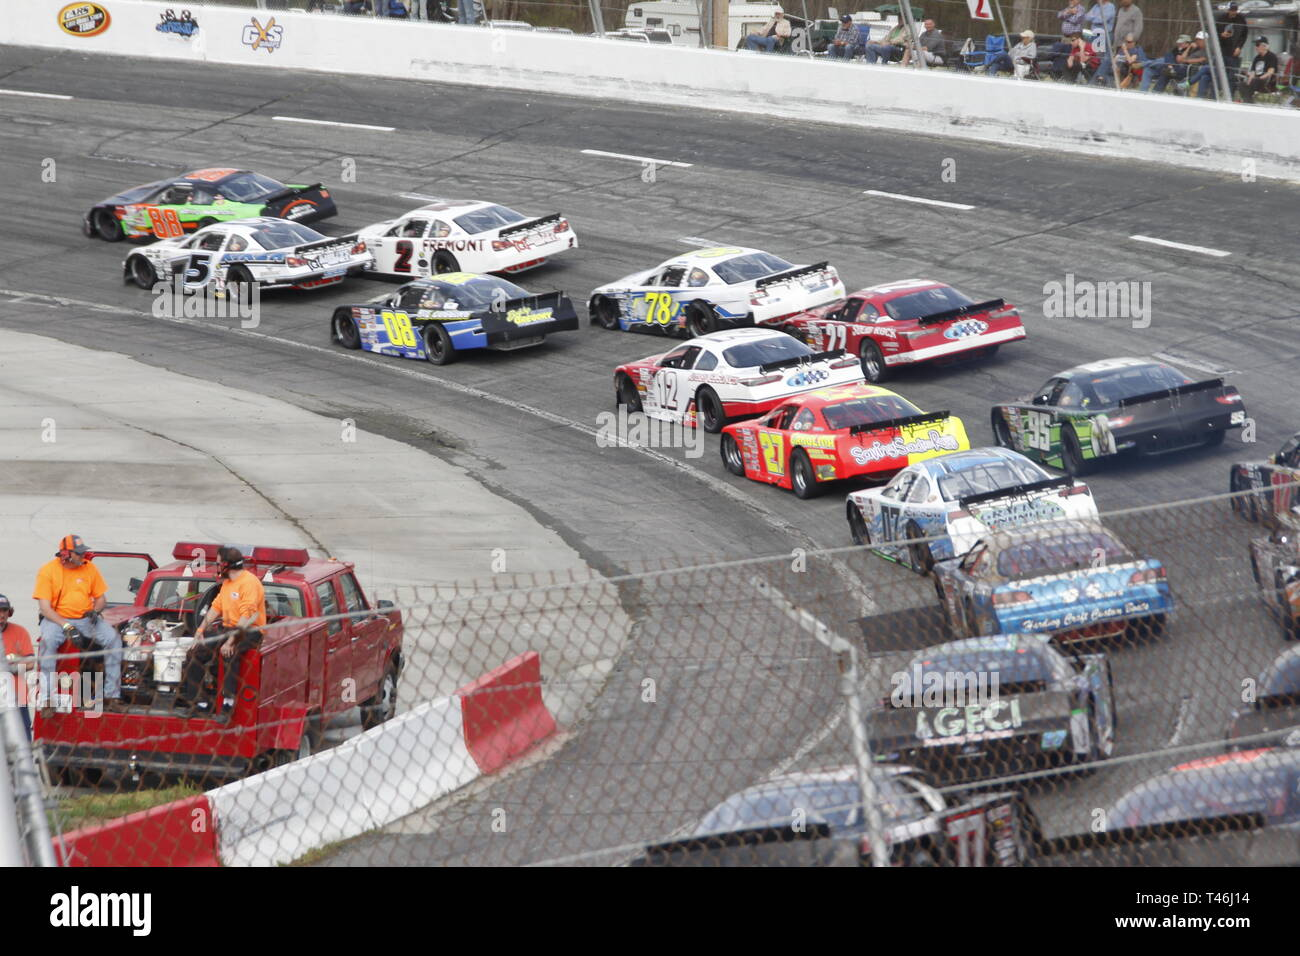 Race cars on racetrack at Orange County Speedway North Carolina - Stock Image